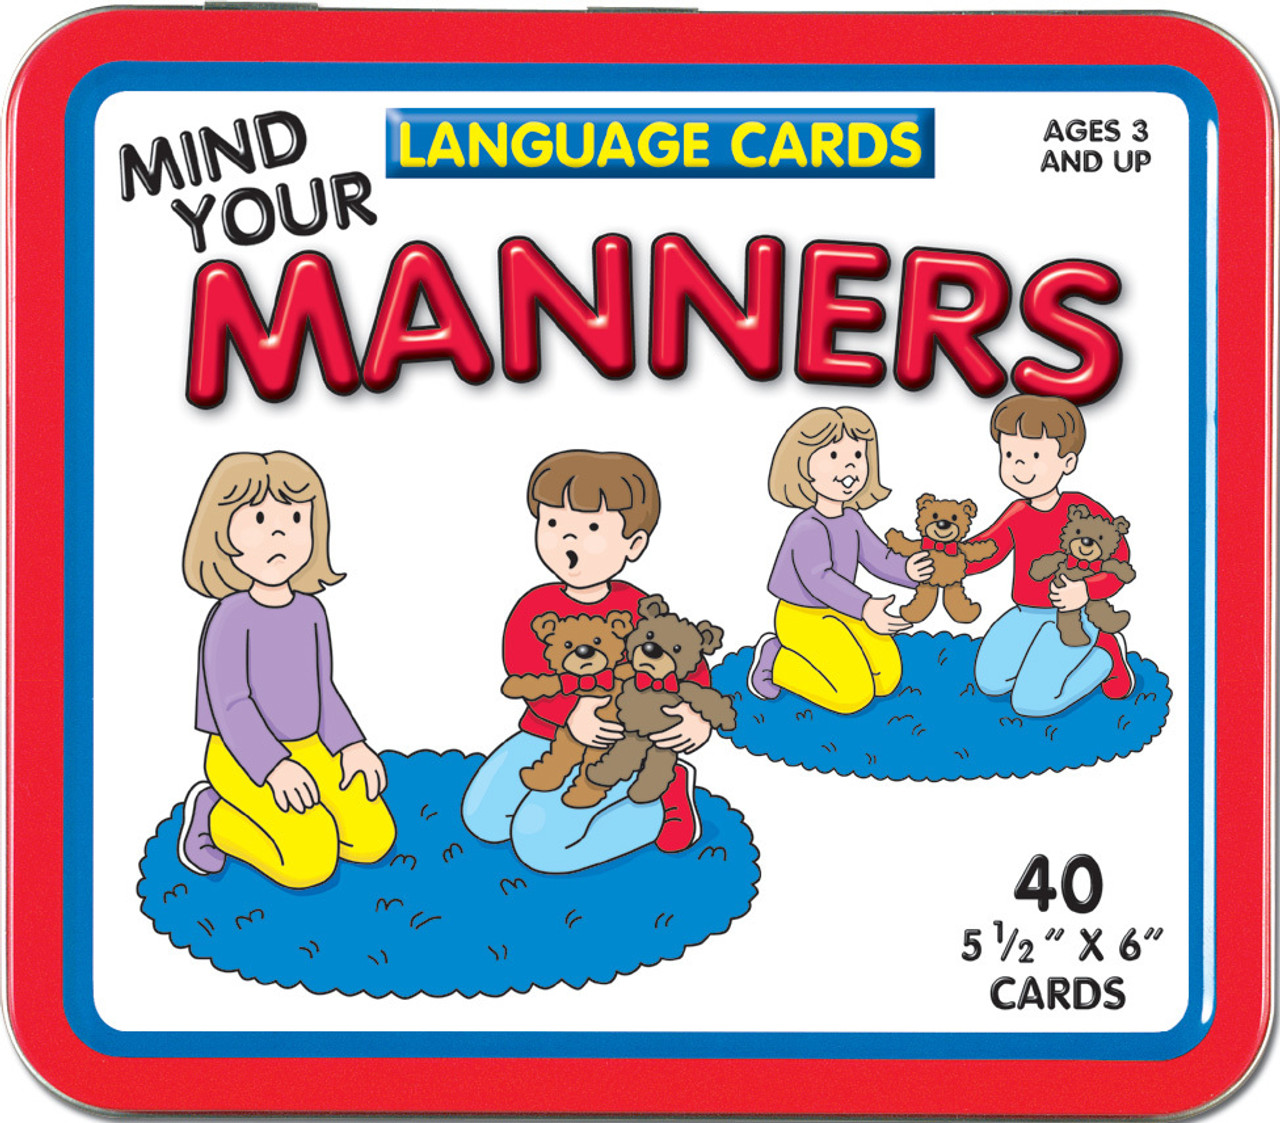 Mind Your Manners >> Mind Your Manners Language Cards